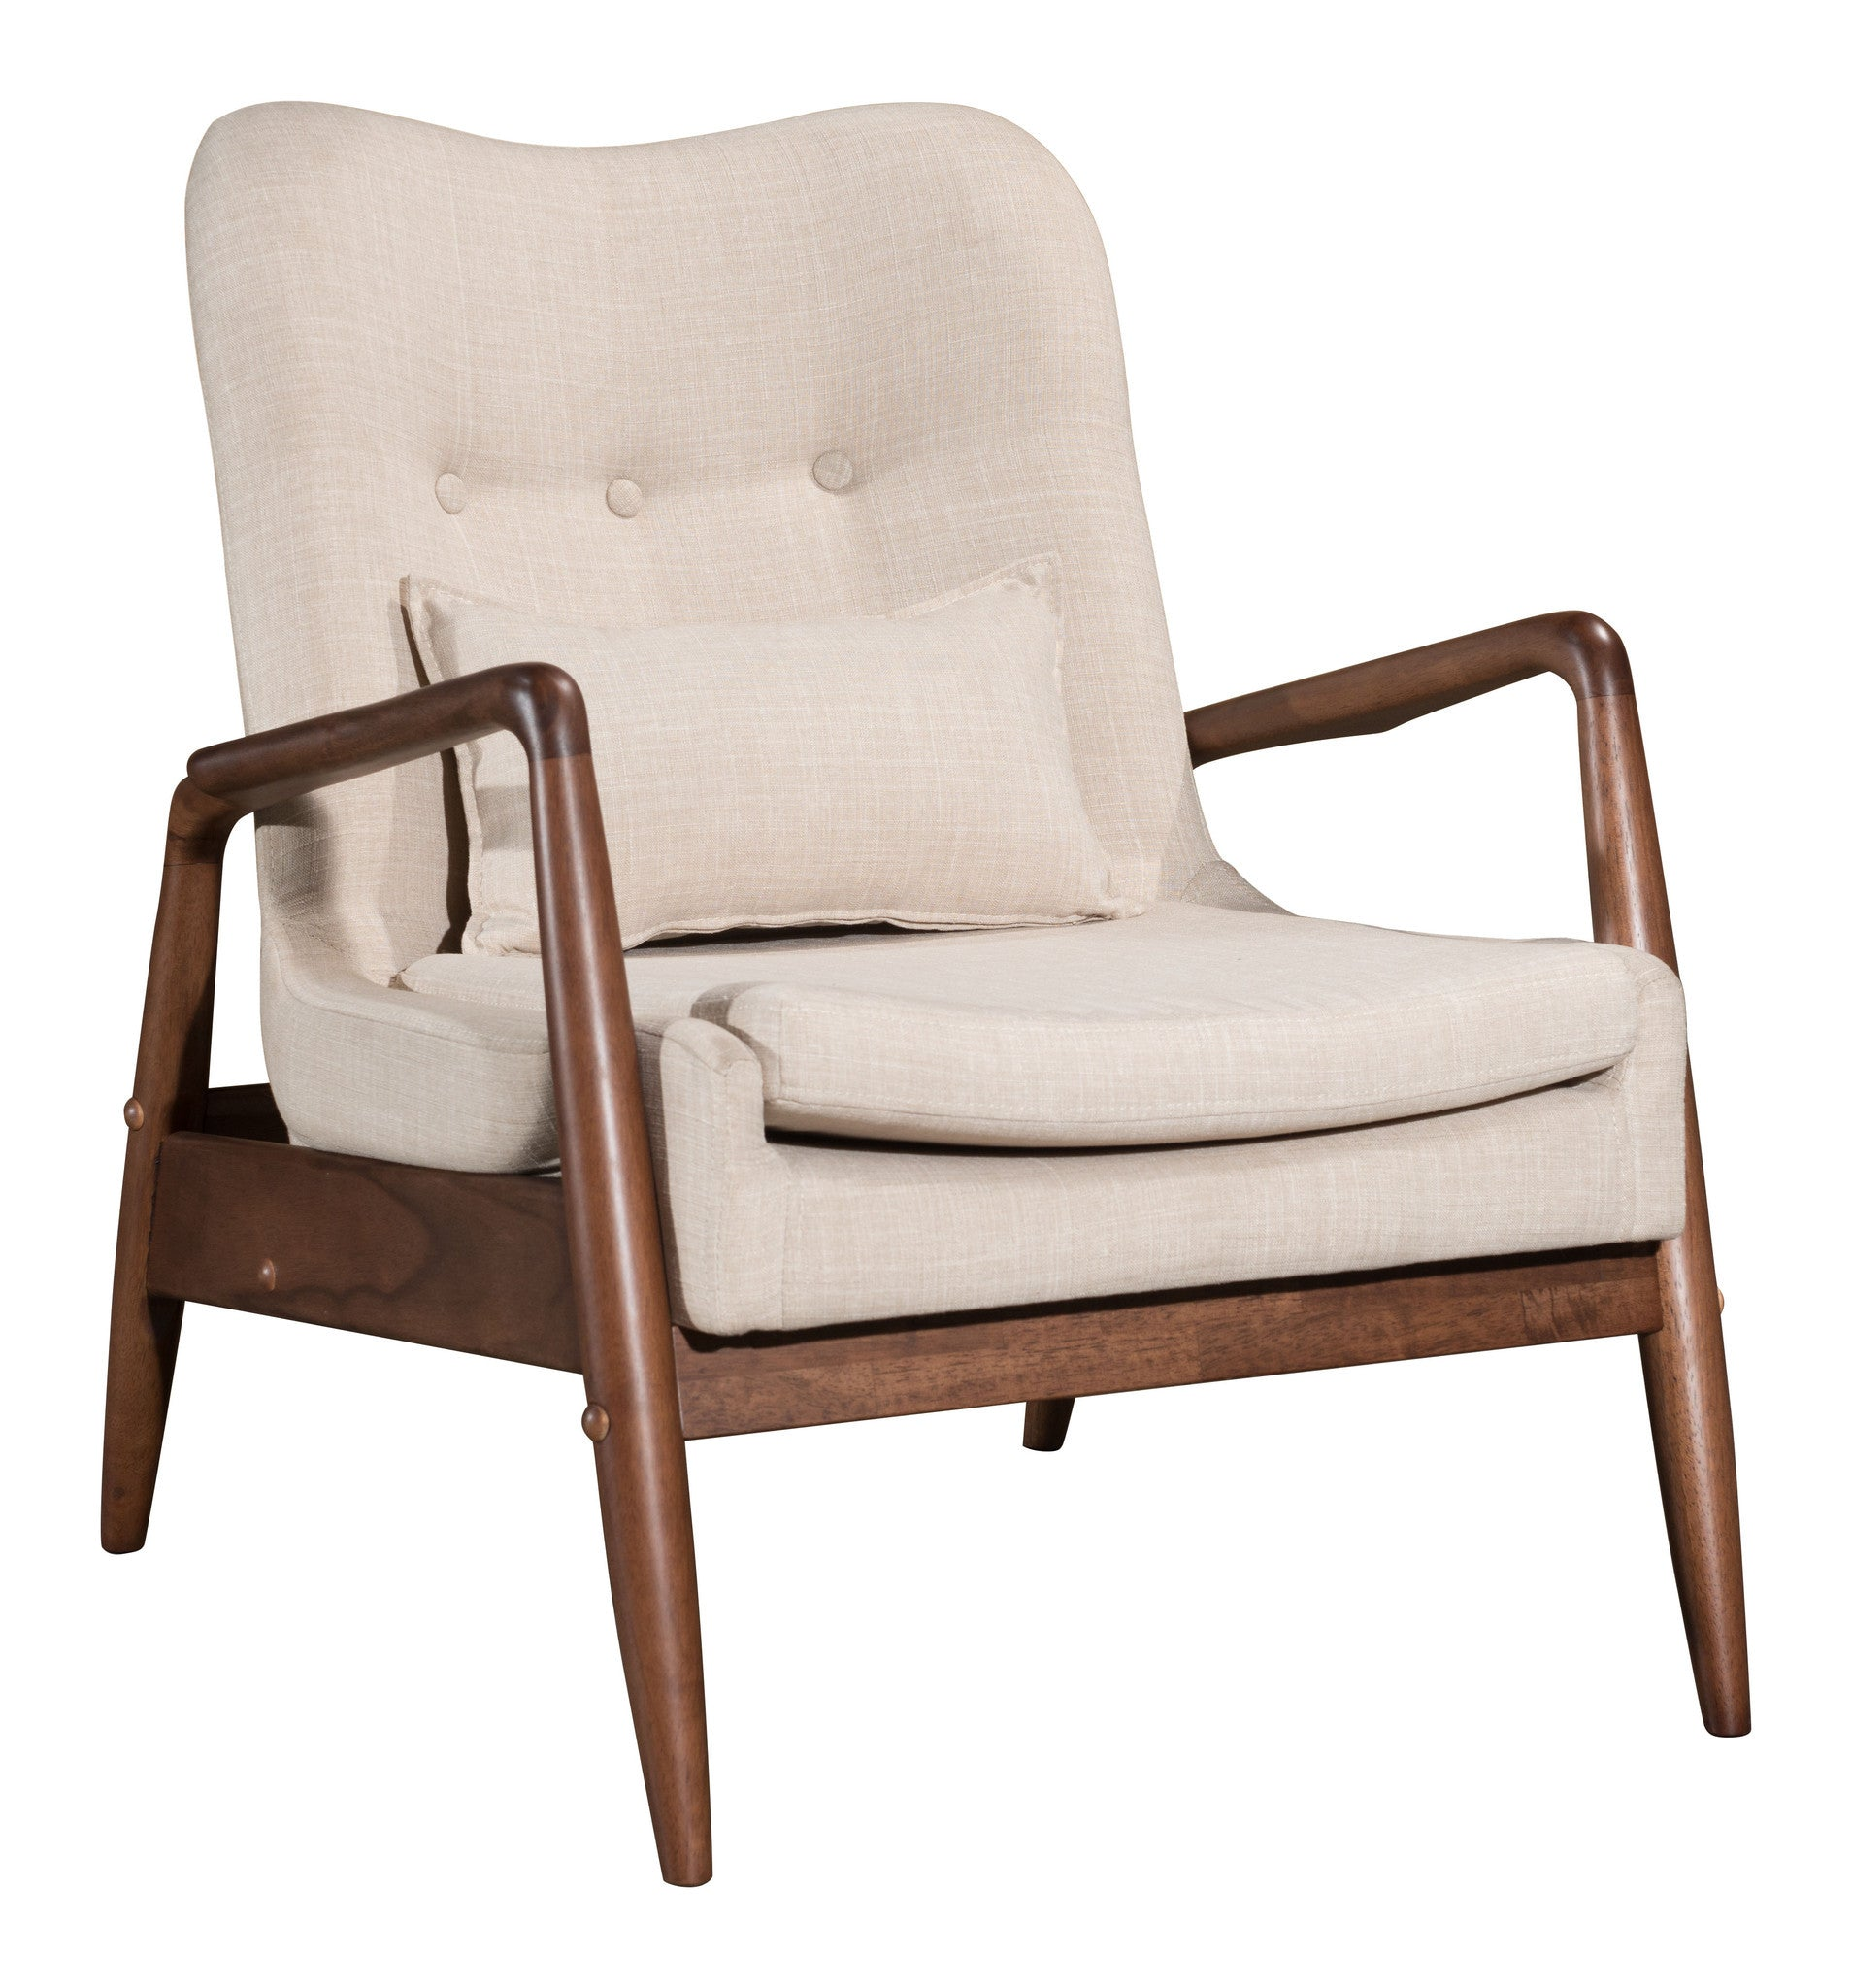 ... Bully Lounge Chair U0026 Ottoman Set In Tufted Beige Fabric On Wood Frame Lounge  Chairs ...